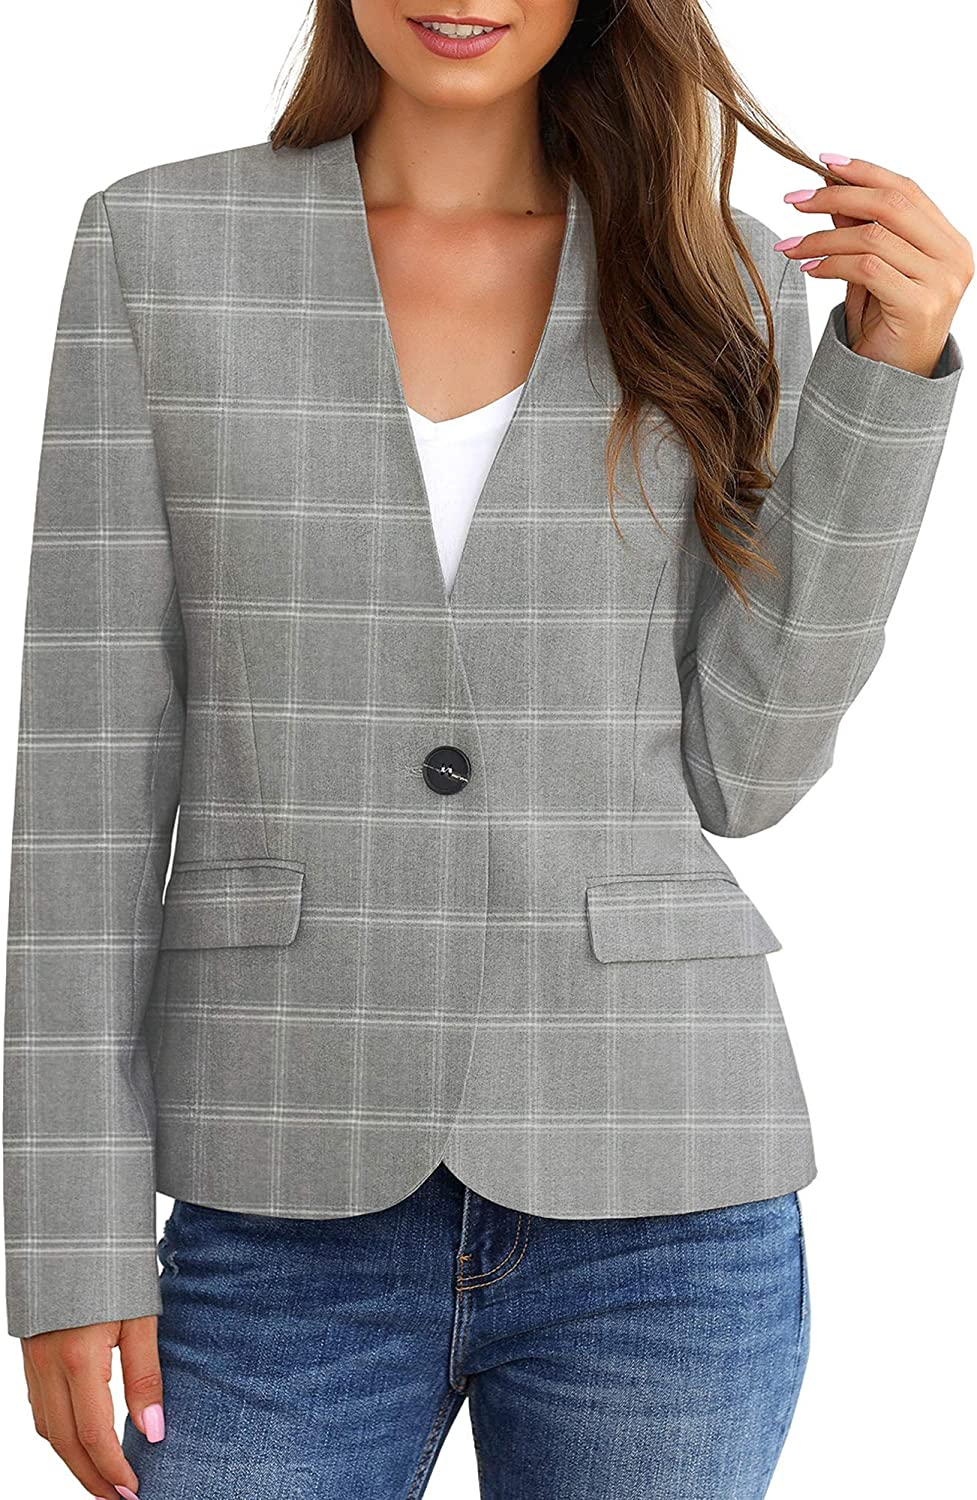 GRAPENT Women's Business Casual Pocket Work Office Blazer Back Slit Jacket Suit A Grey Plaid xSobv